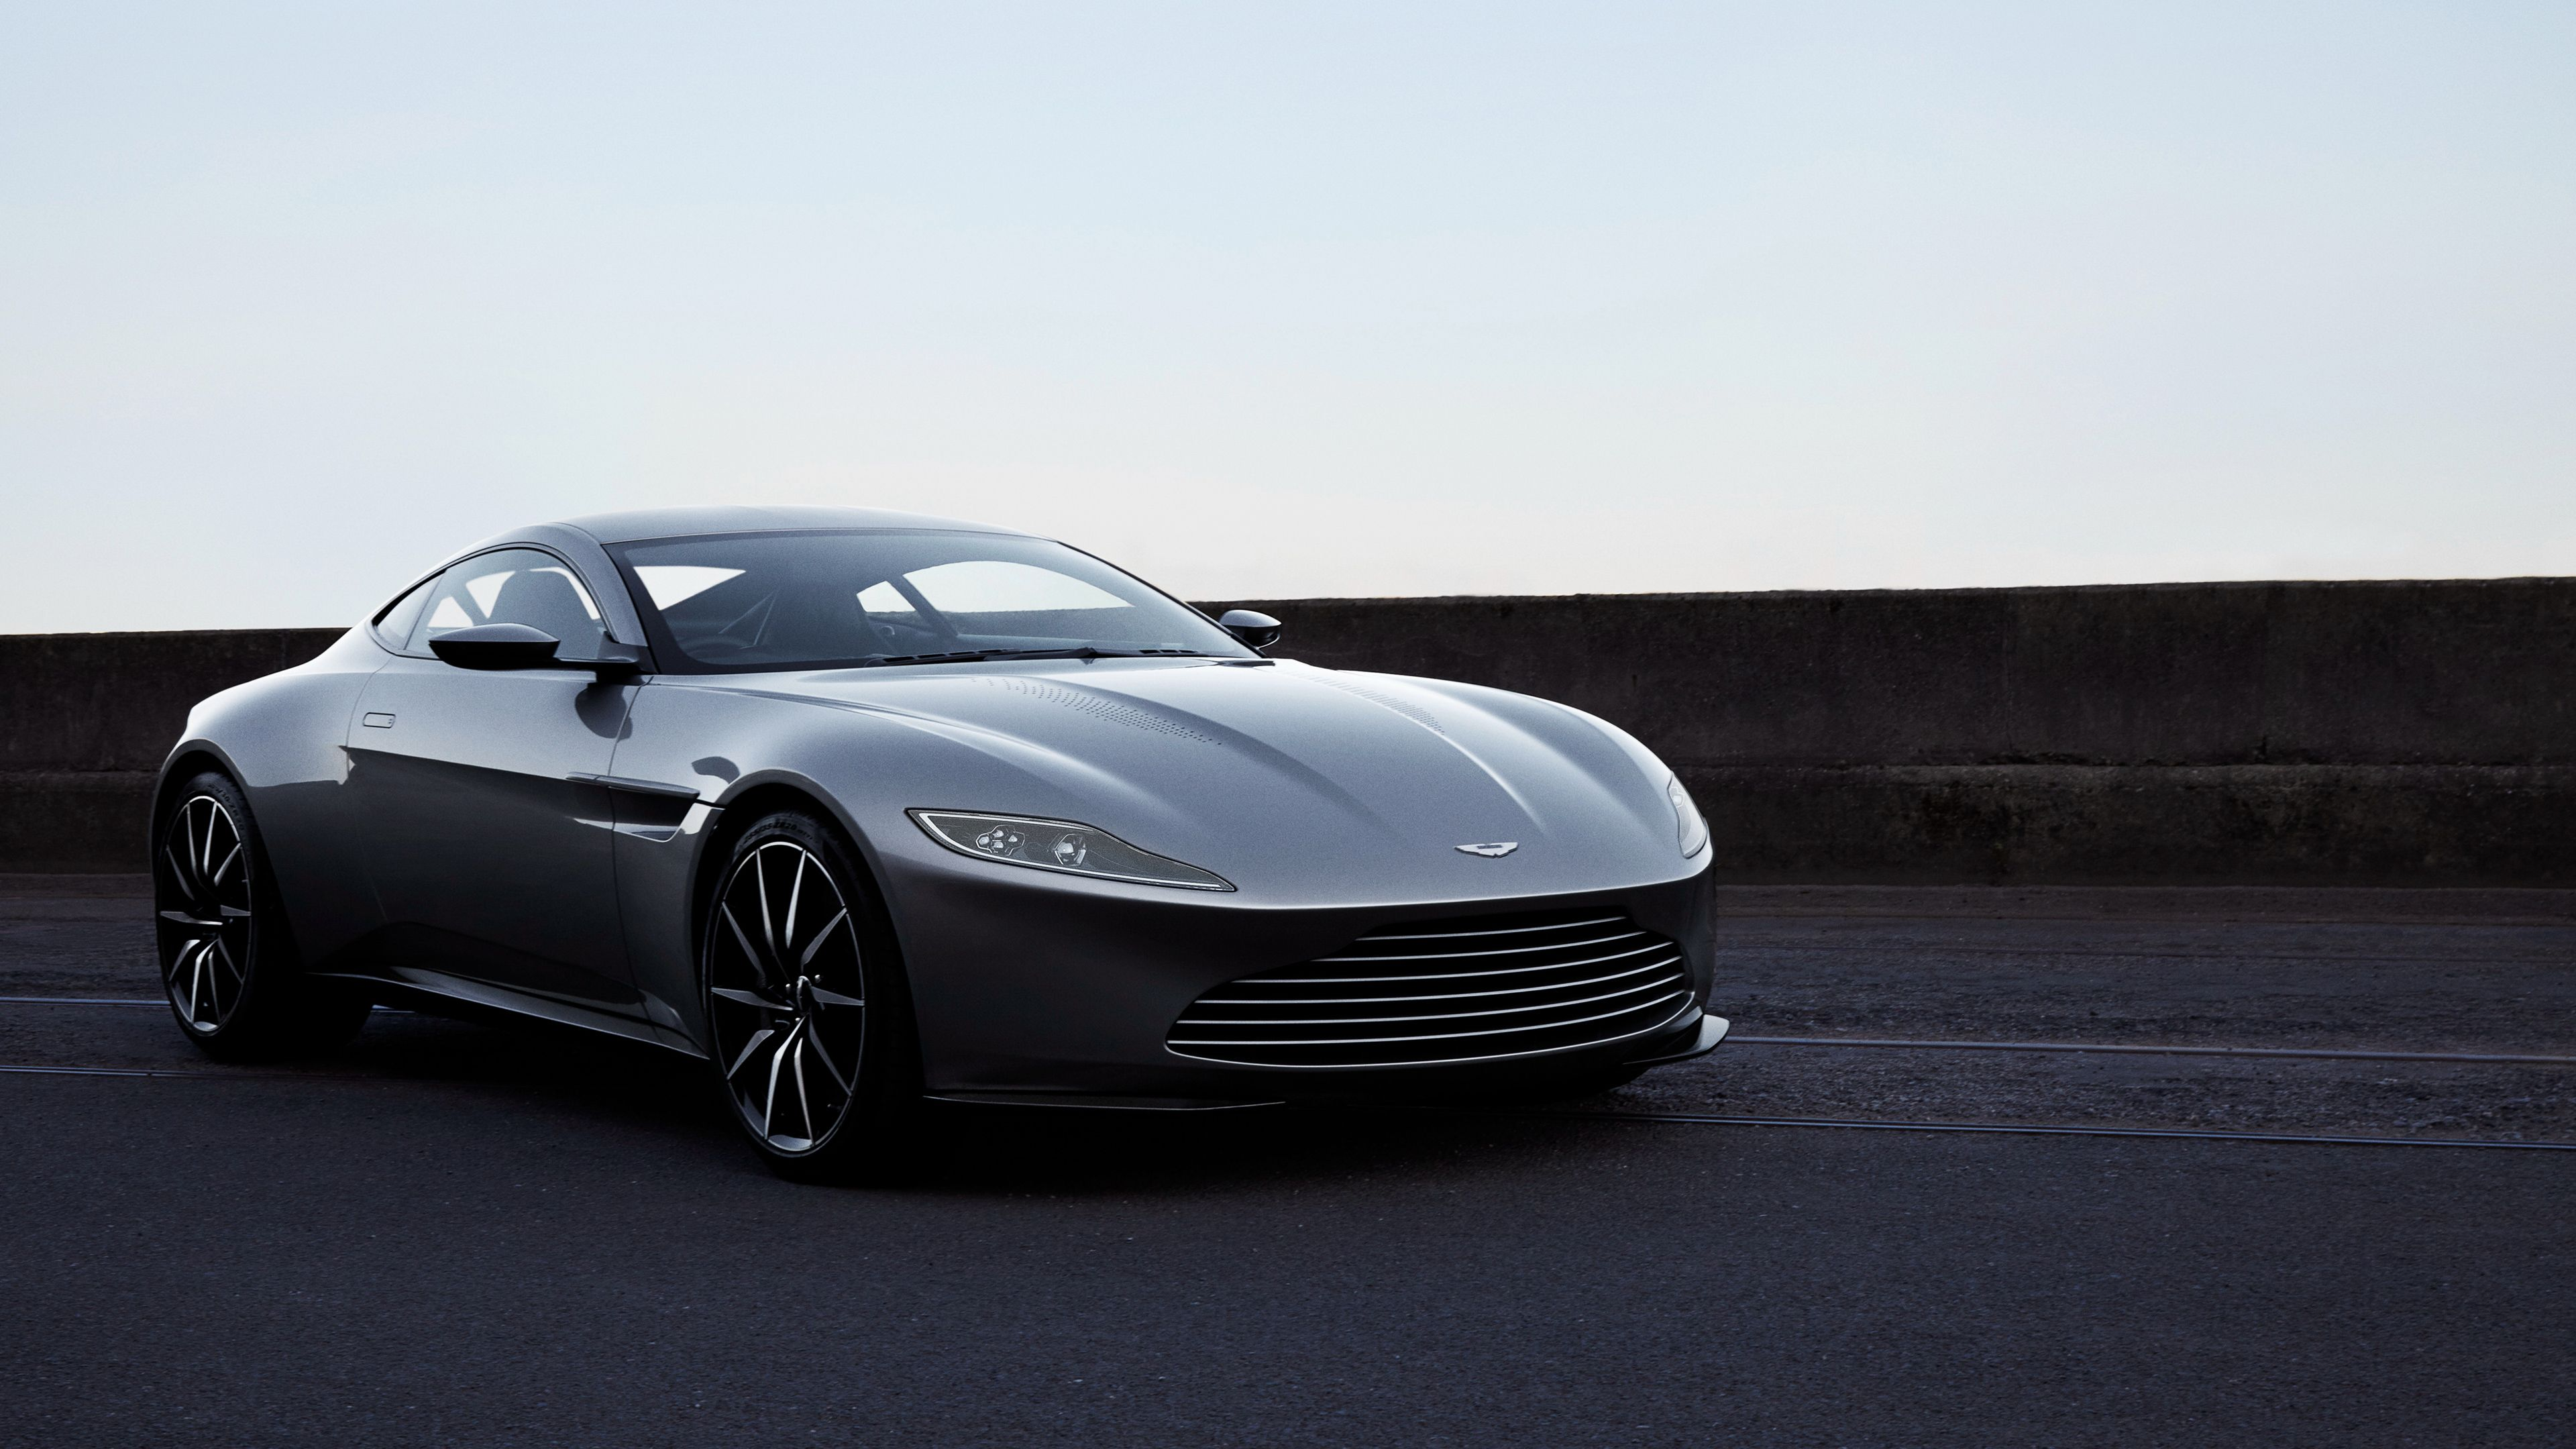 Lovely Aston Martin DB10 Bond Car   Car Wallpapers,Desktop Car Wallpapers,